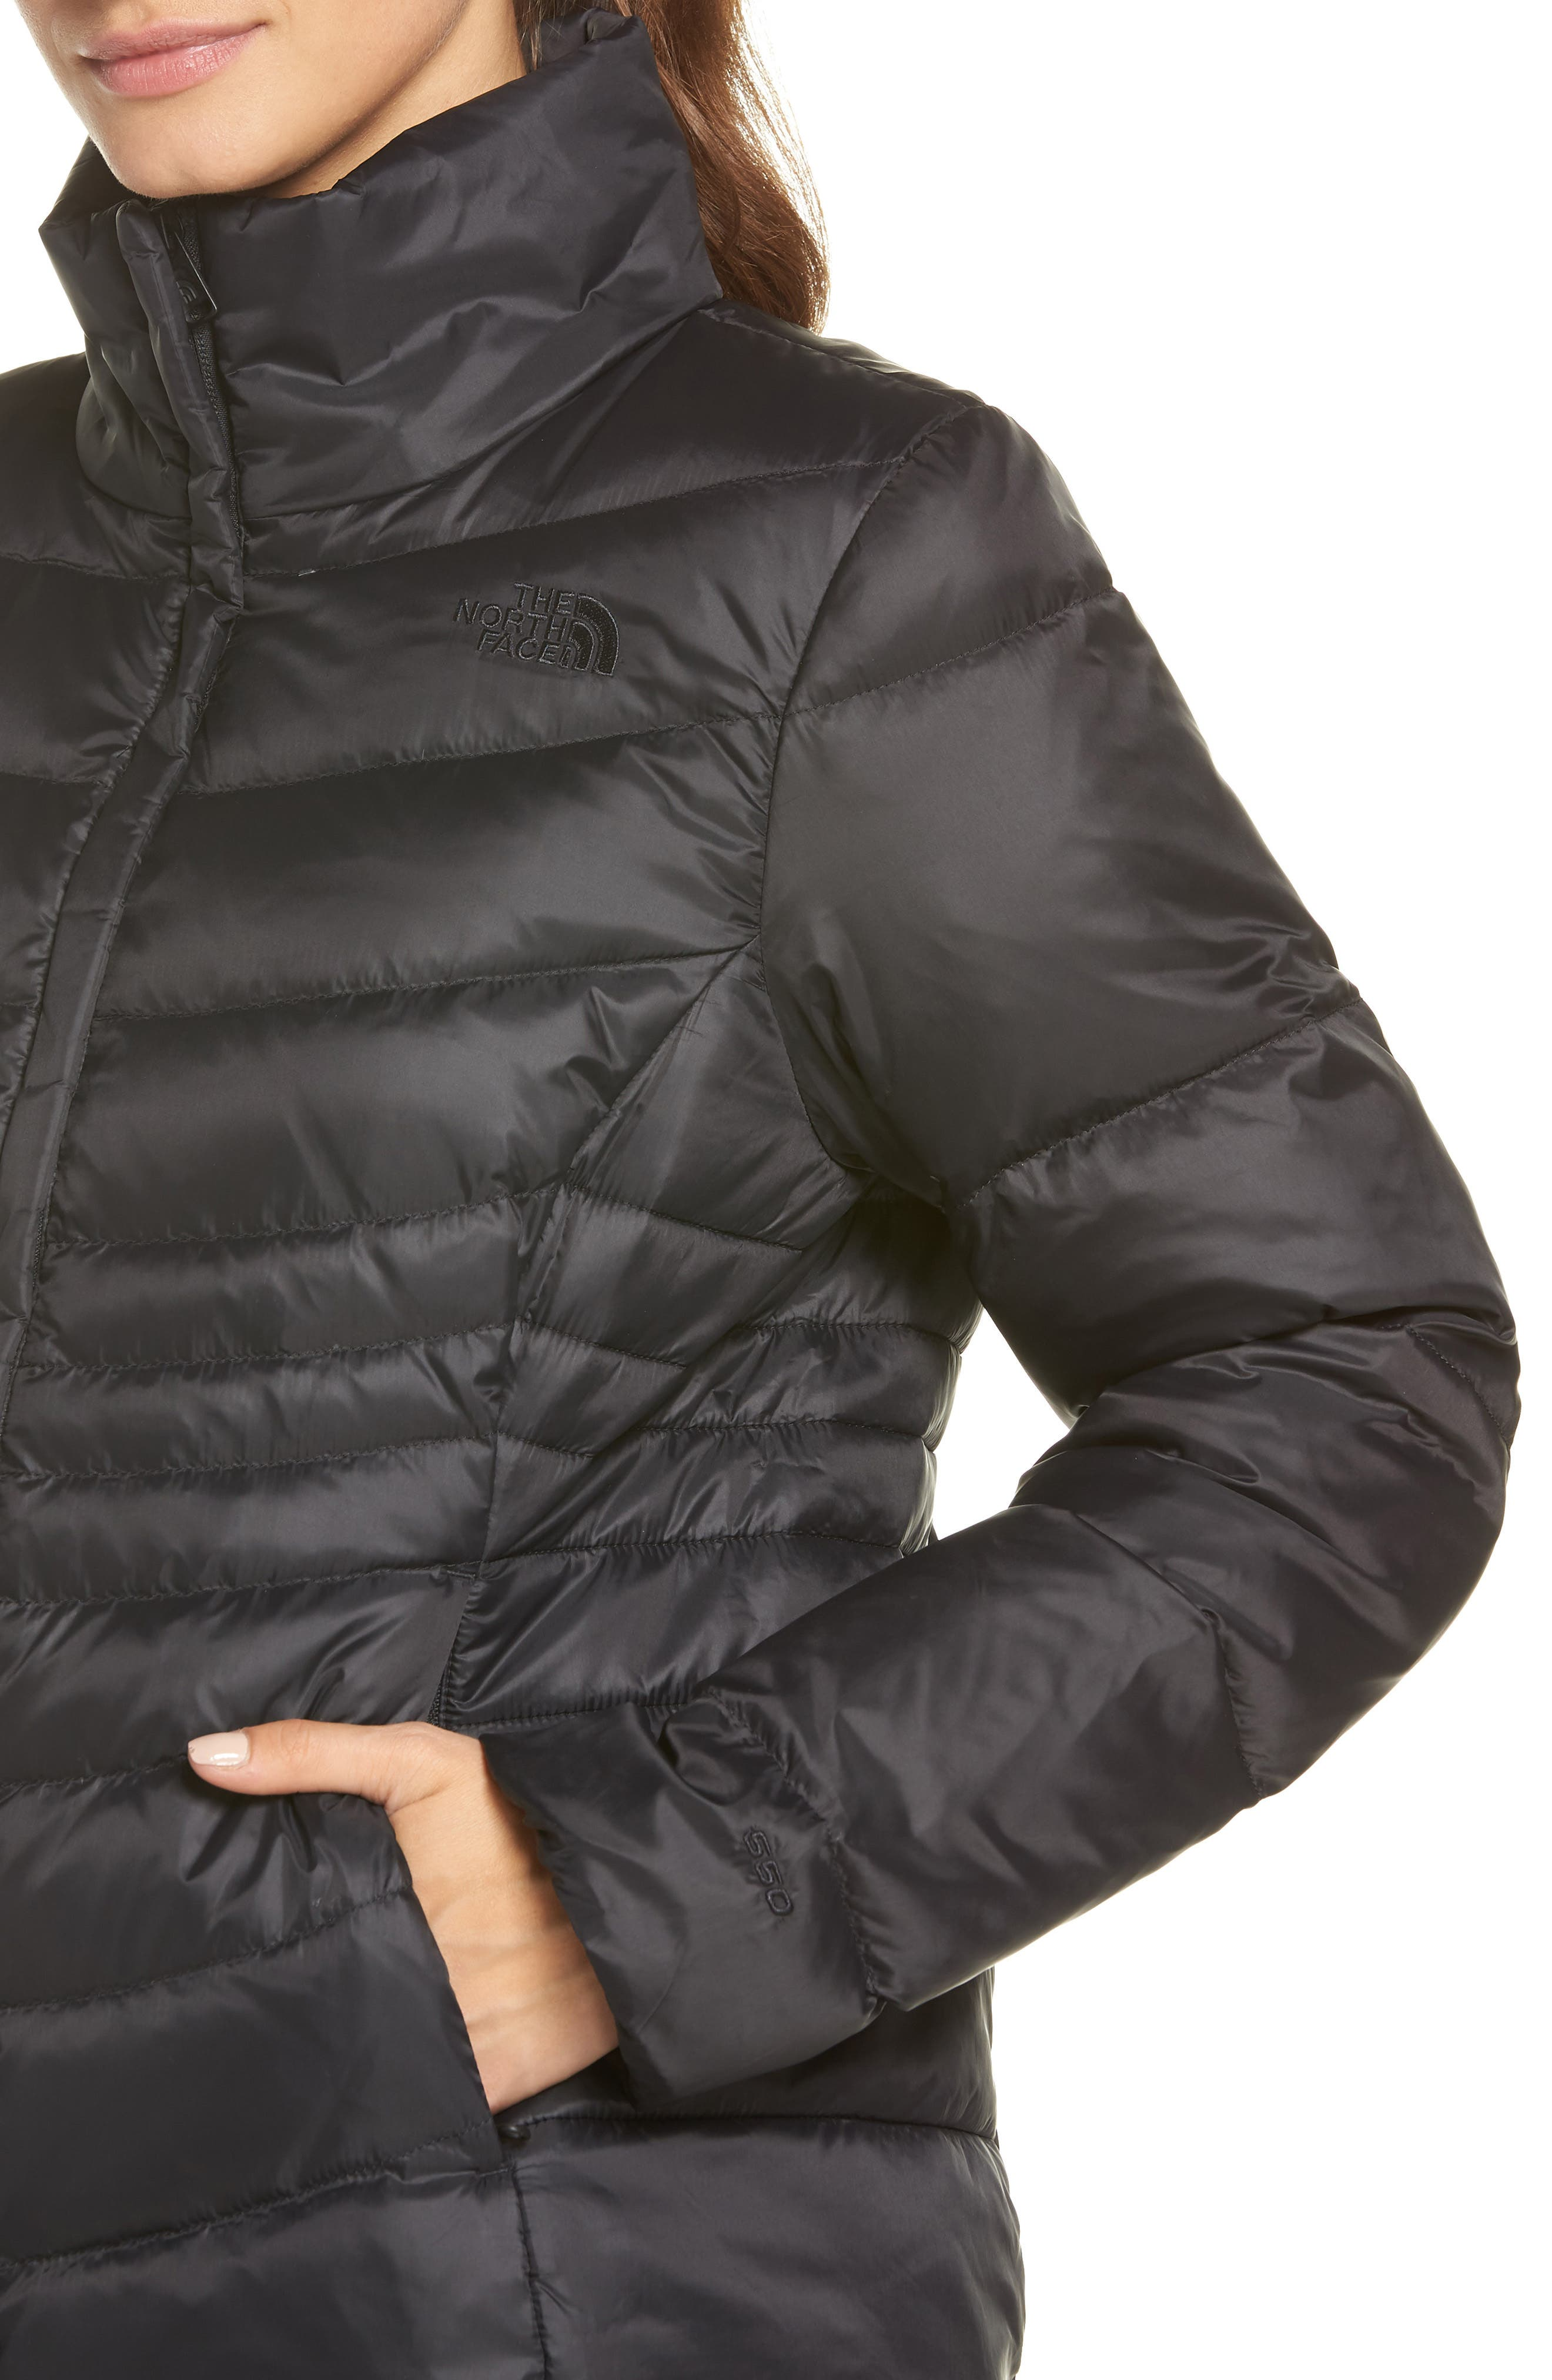 THE NORTH FACE,                             Aconcagua II Down Jacket,                             Alternate thumbnail 4, color,                             001